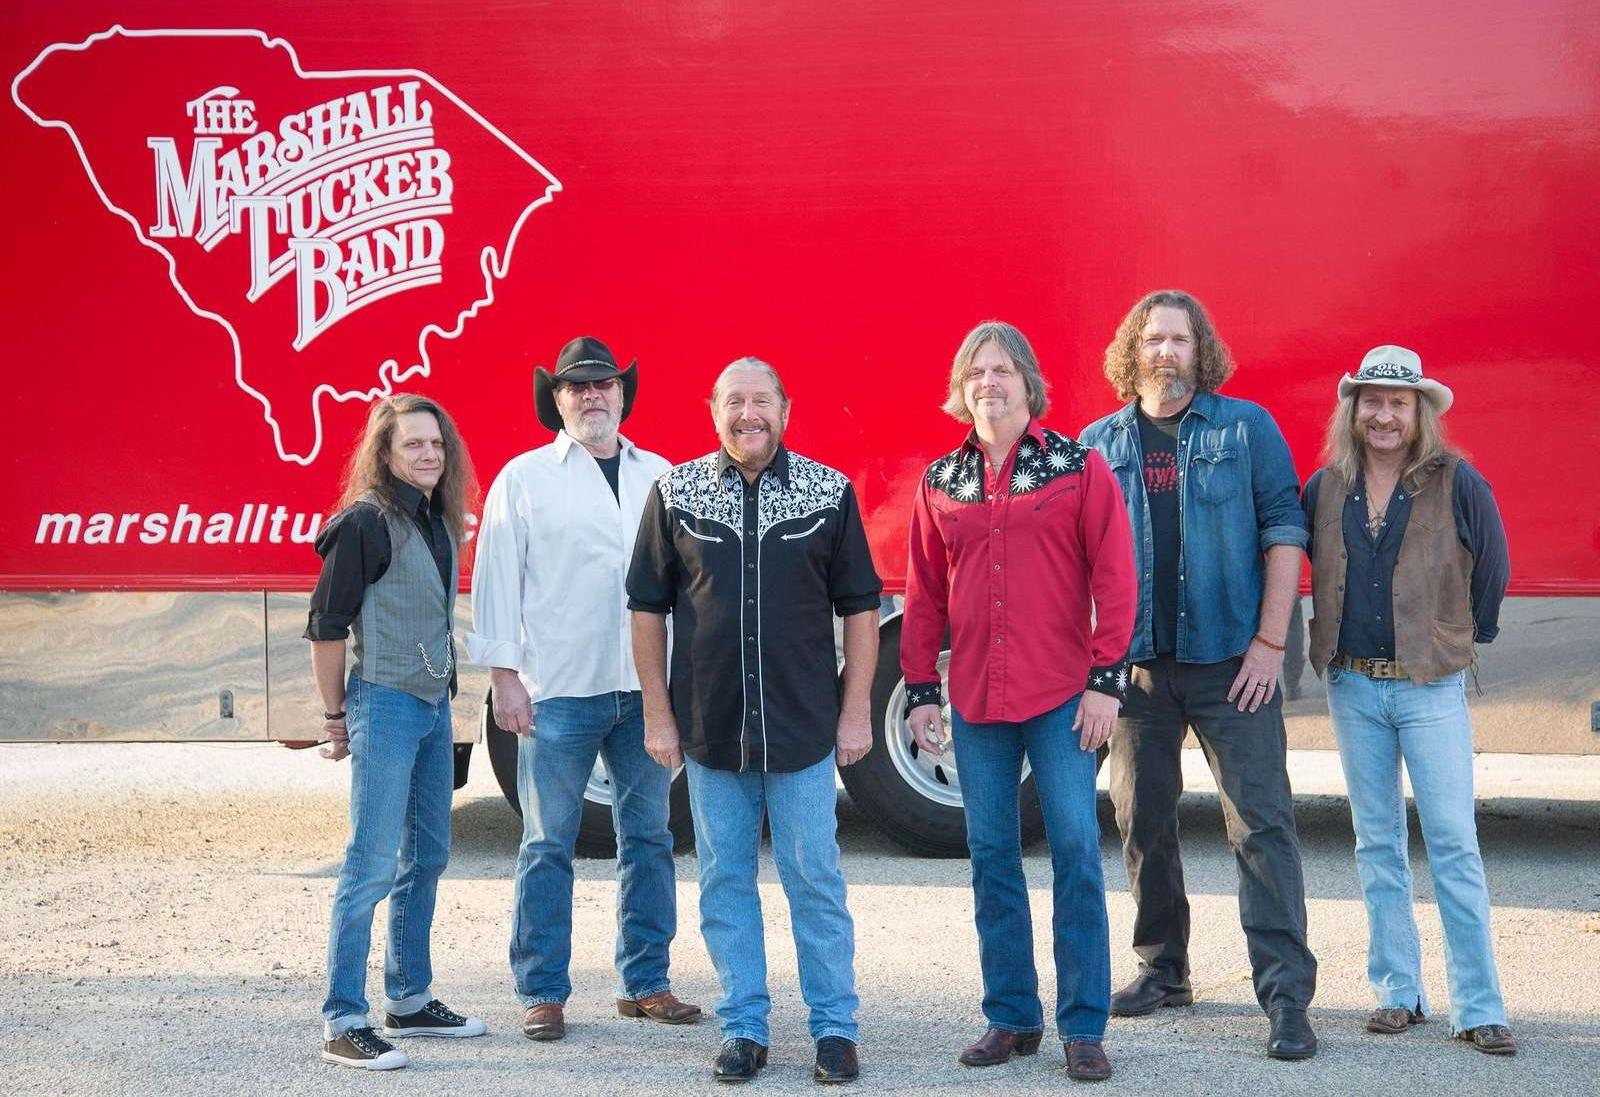 The Marshall Tucker Band Signs With UTA